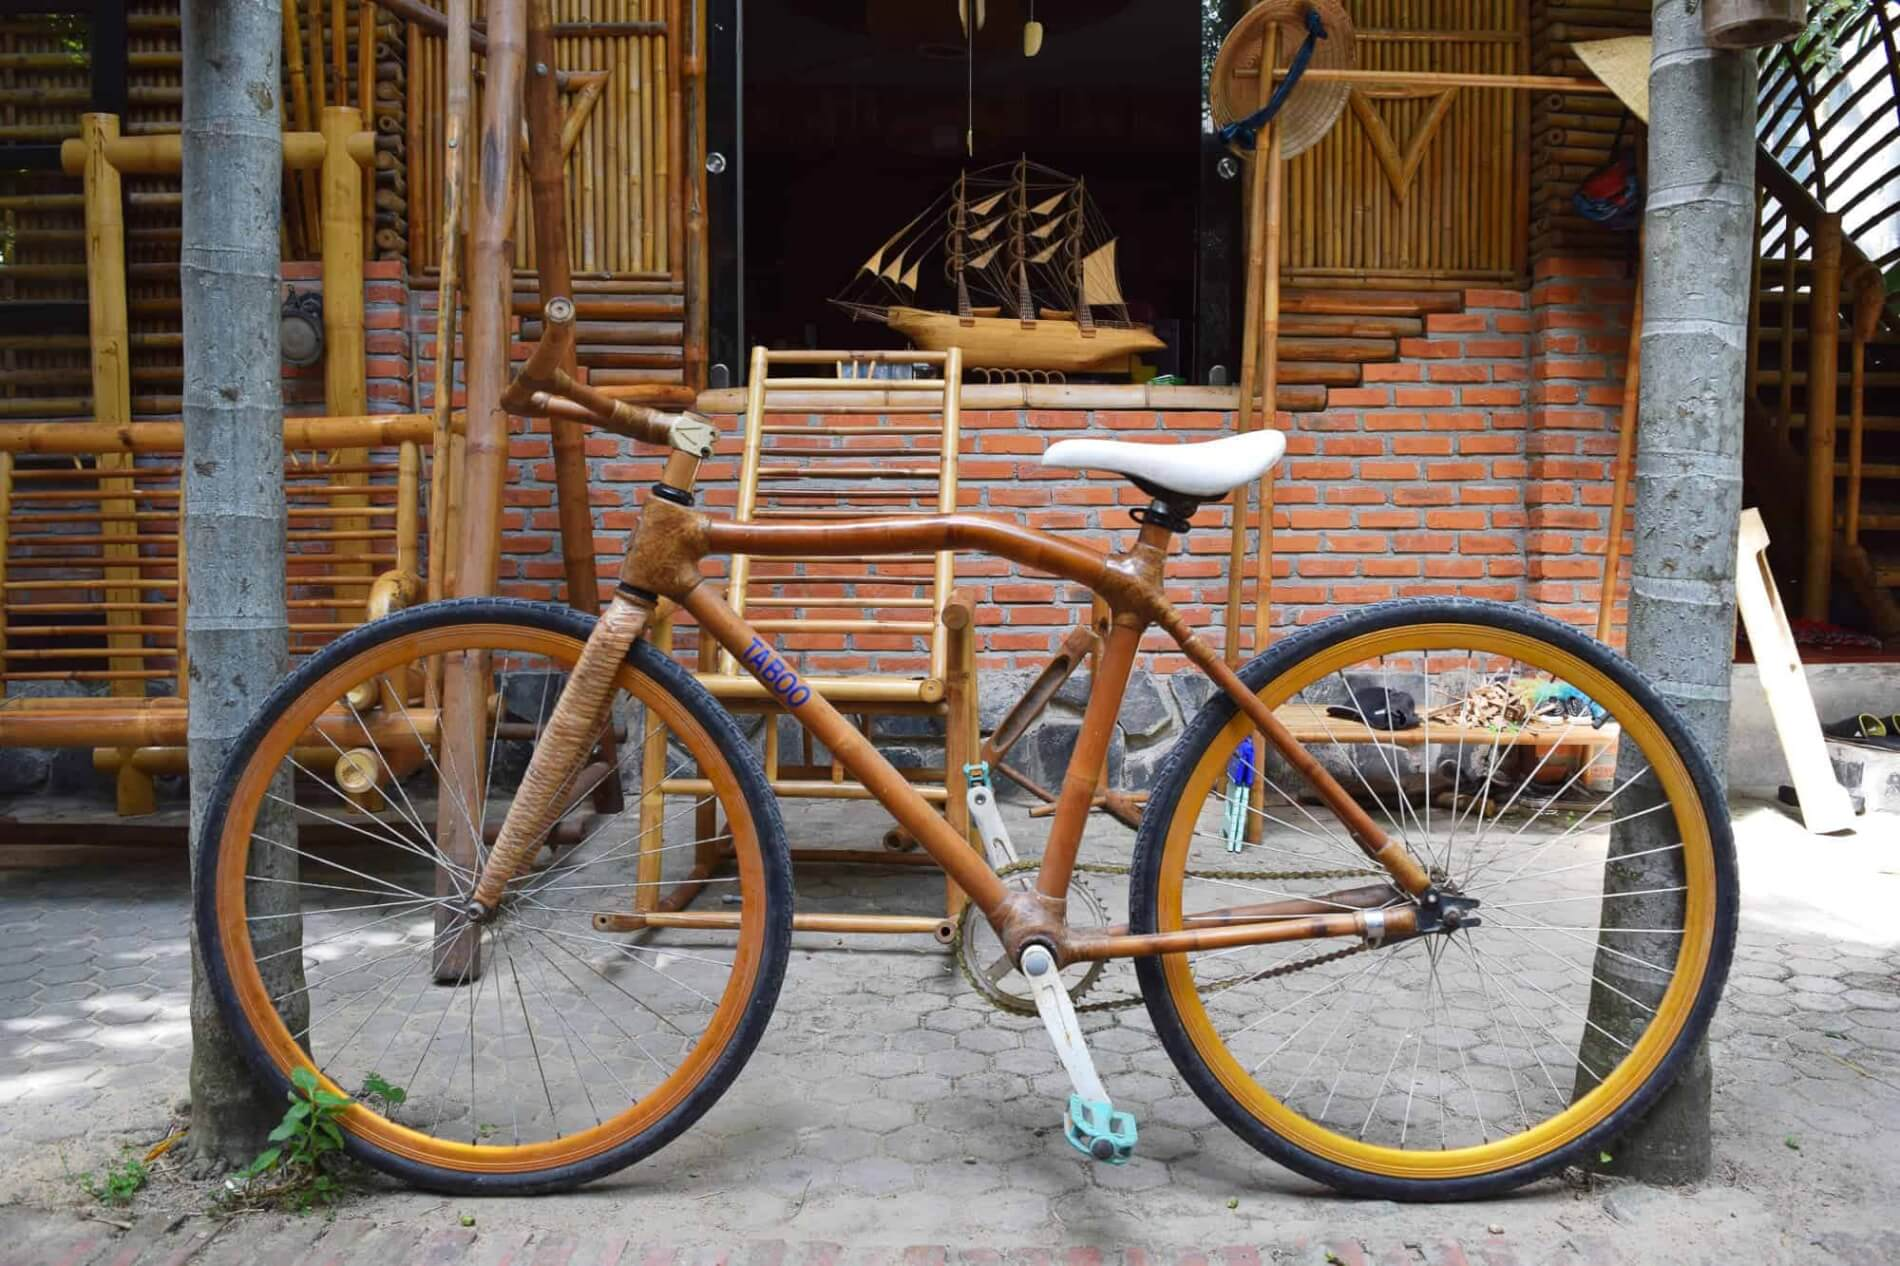 Taboo Bamboo - lantern making - bicycle